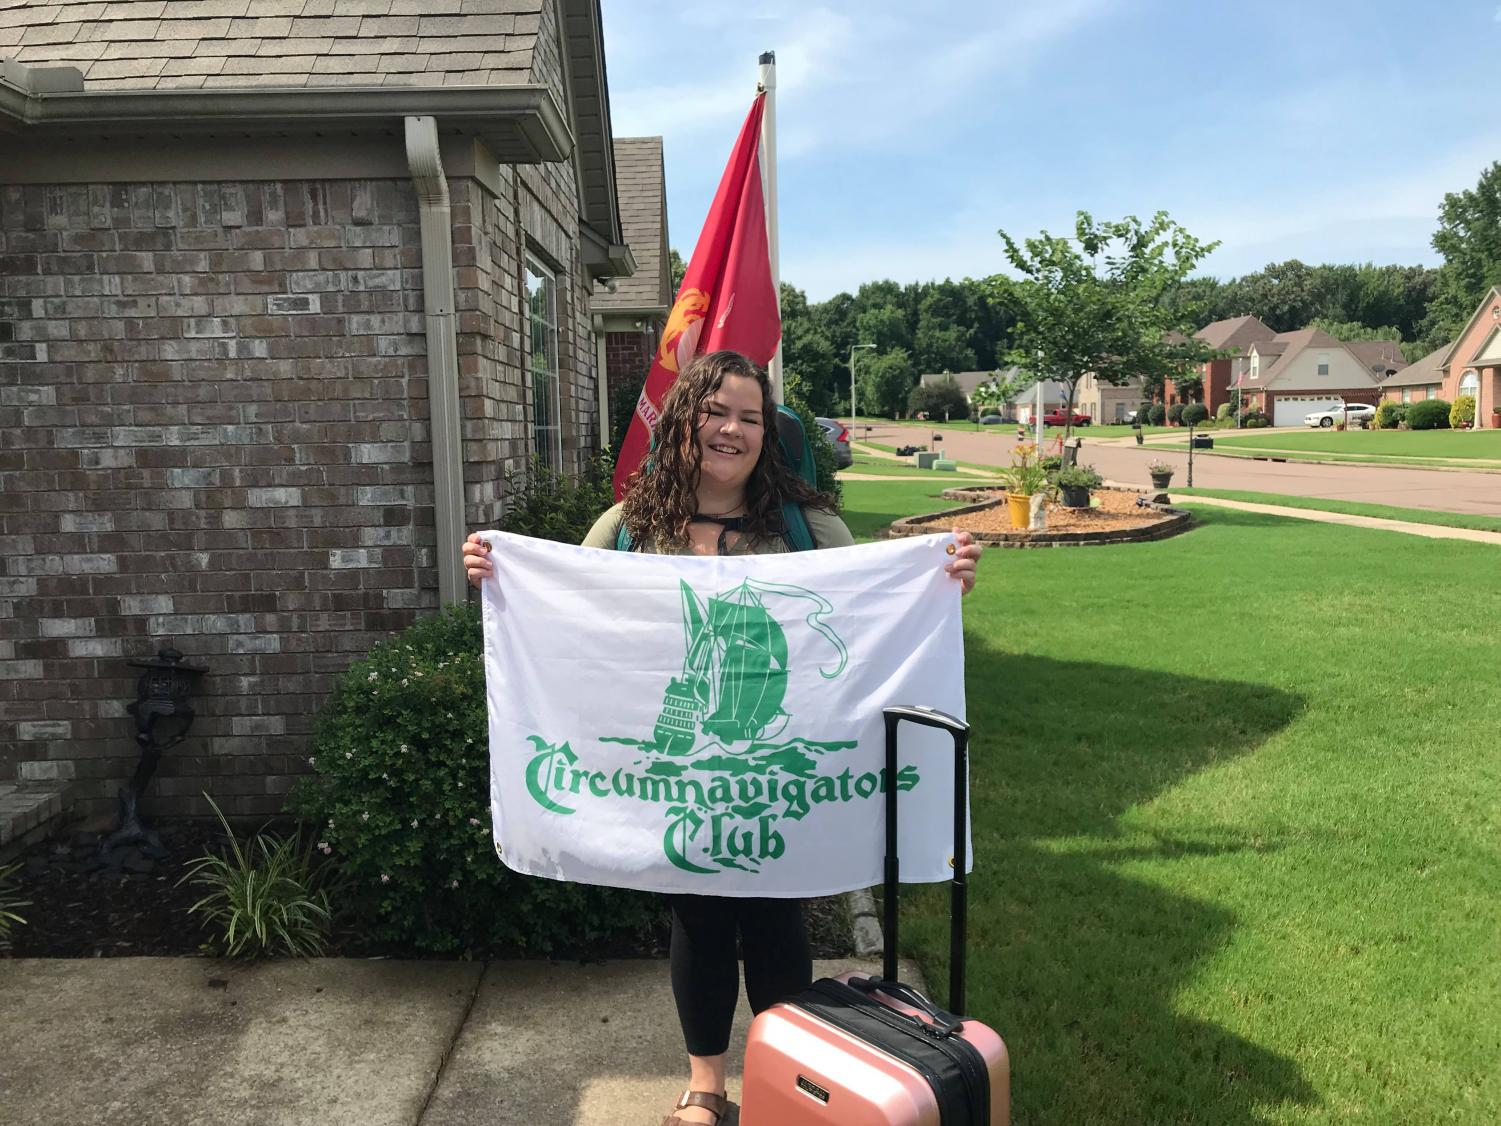 Hannah Whitehouse prepares to depart on her summer journey. Funded by the Circumnavigators Travel-Study Grant, Whitehouse will research El Sistema-inspired music education programs in six different countries.